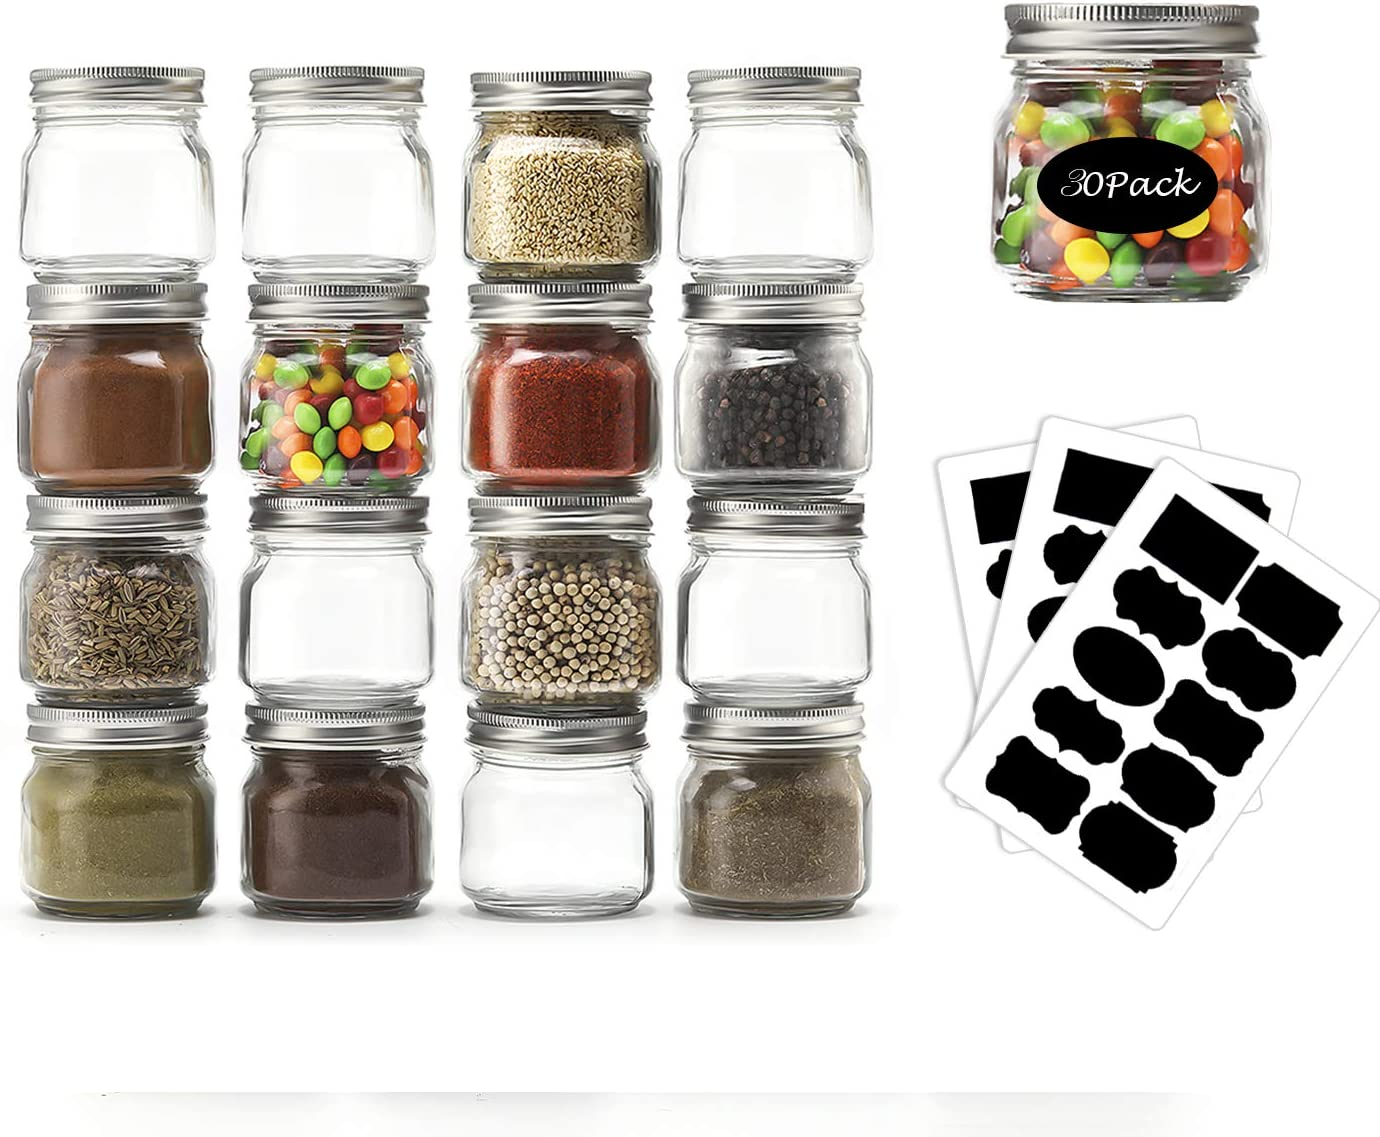 Mason Jars 8 OZ- Small Mason Jars With Silver Lids -1/4 Quart Canning Jars  Storage Pickling Jars For Jelly, Jam, Honey, Pickles - Spice Glass Jars - Set of 30 With Free 30 Chalkboard Labels